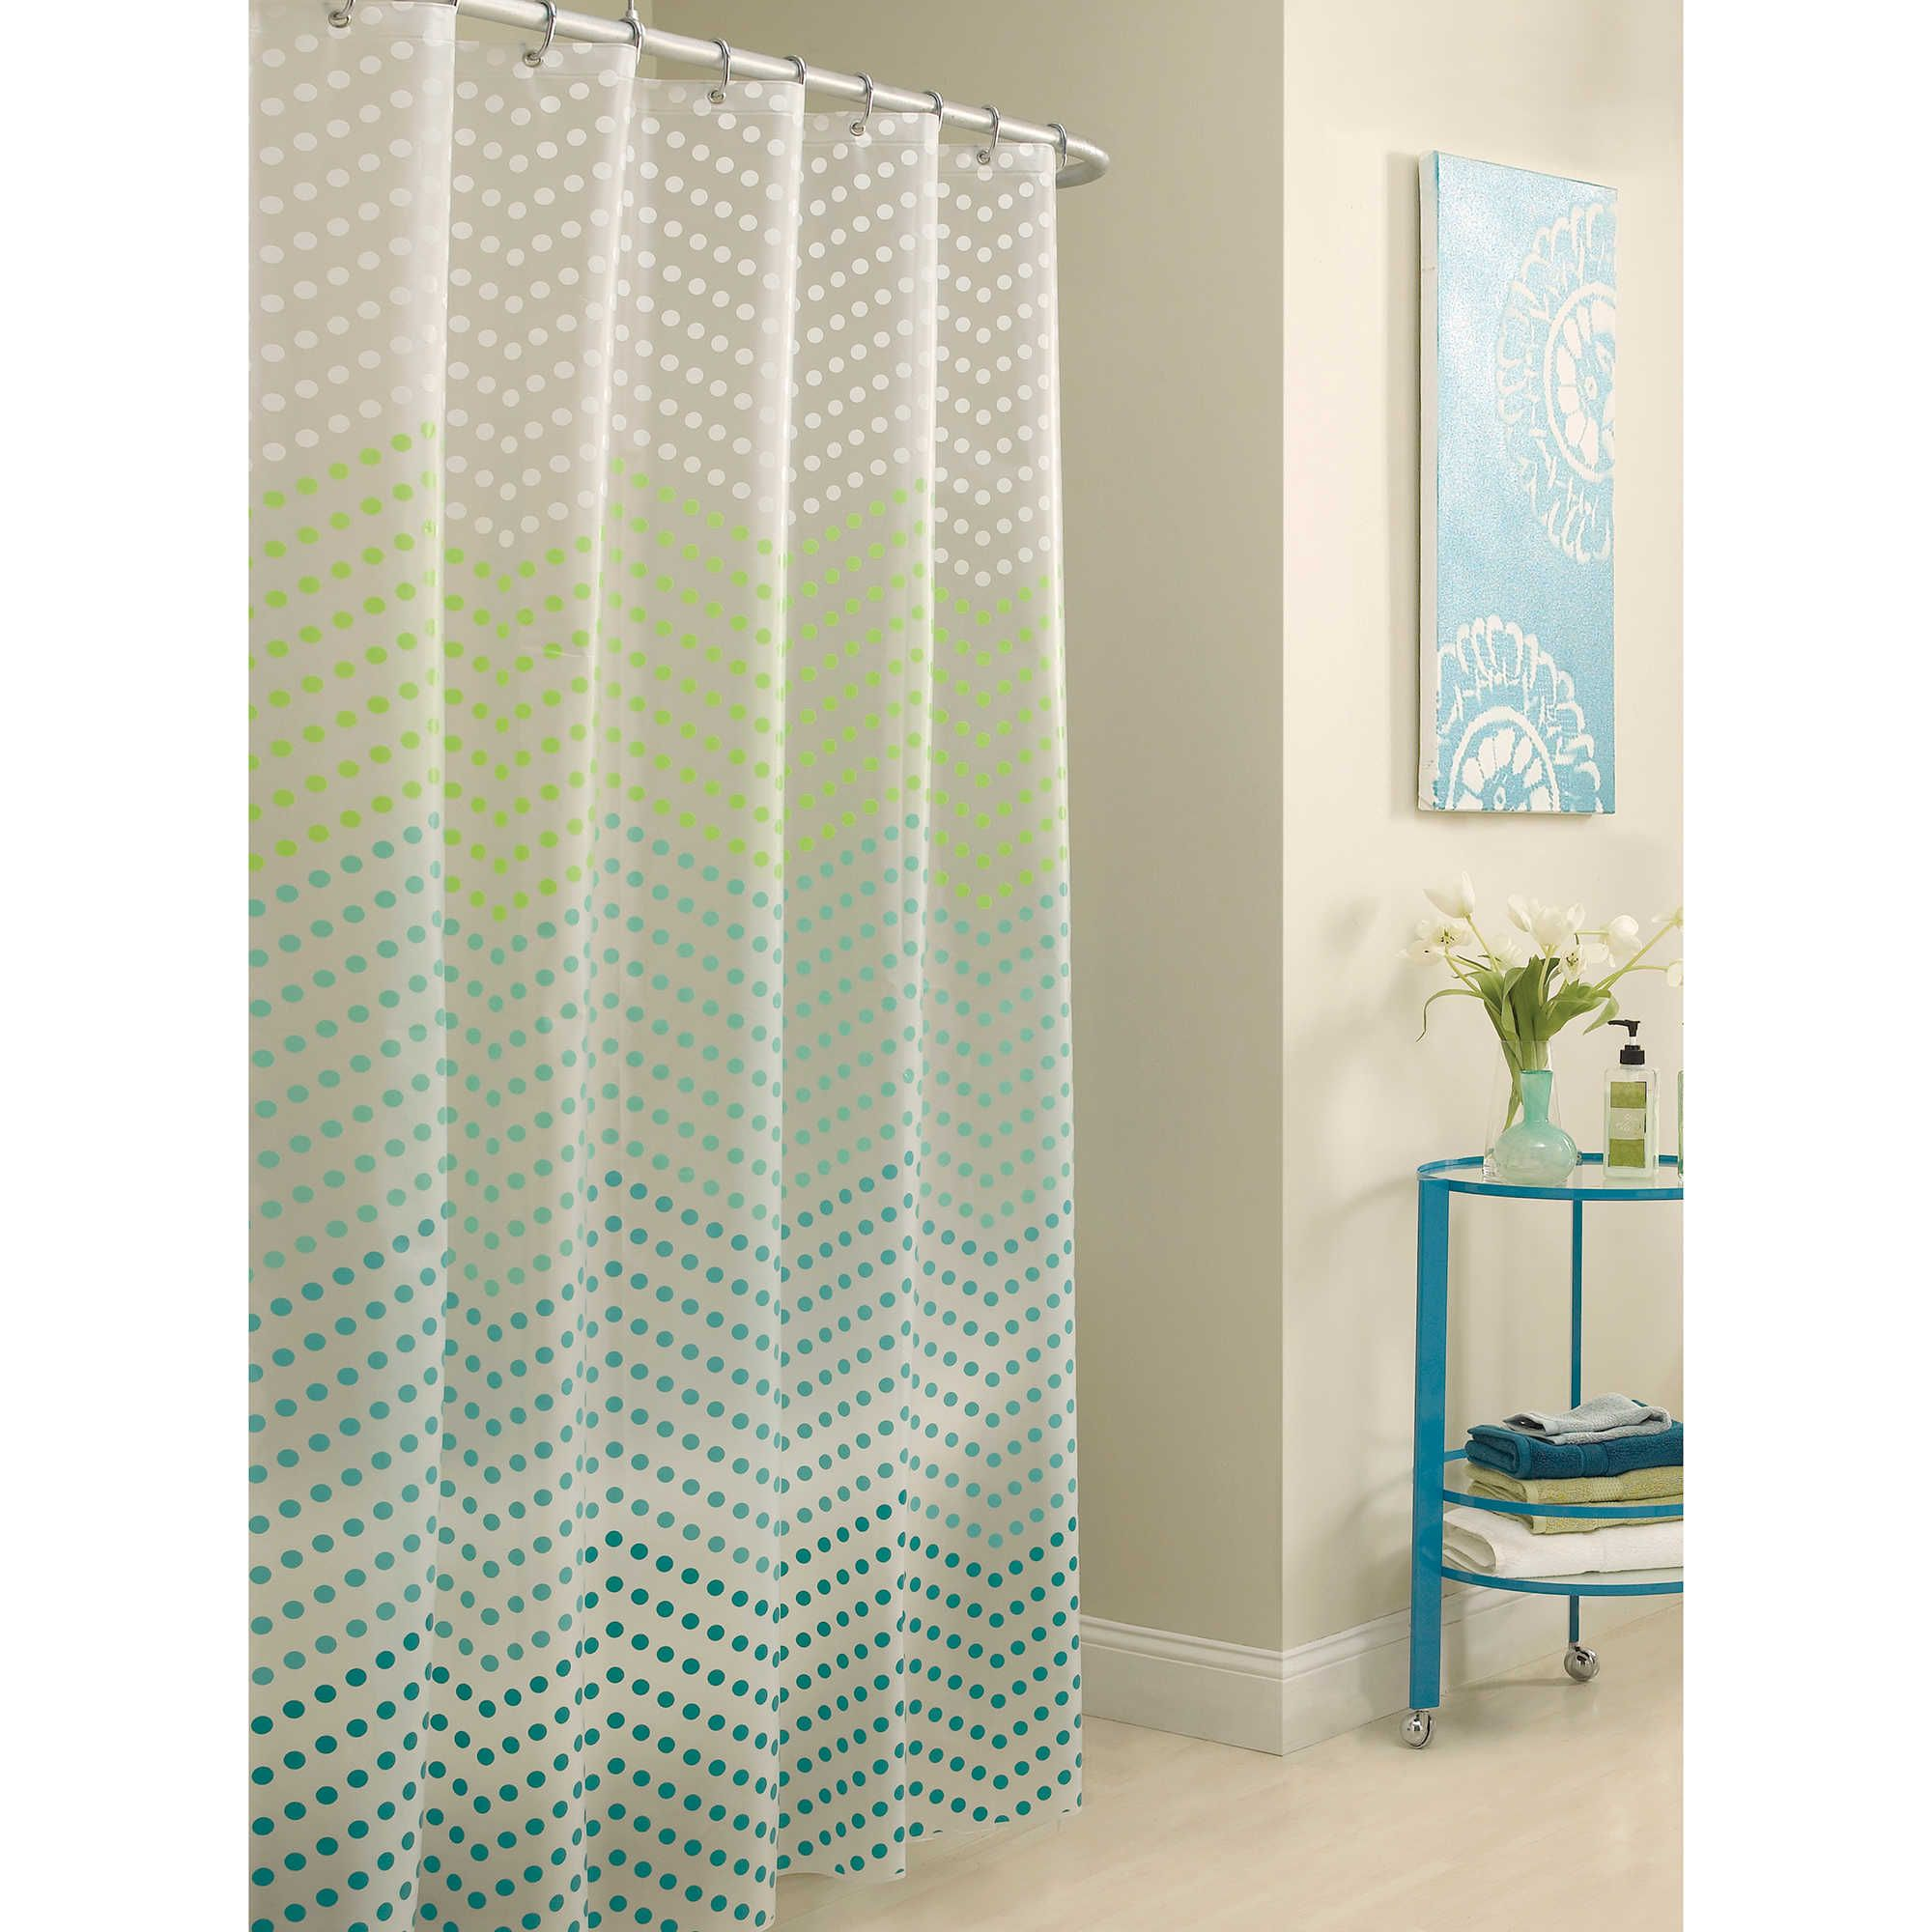 Aqua chevron shower curtain - Liven Up Your Bathroom D Cor With The Chevron Dots Shower Curtain Reminiscent Of Fun Candy